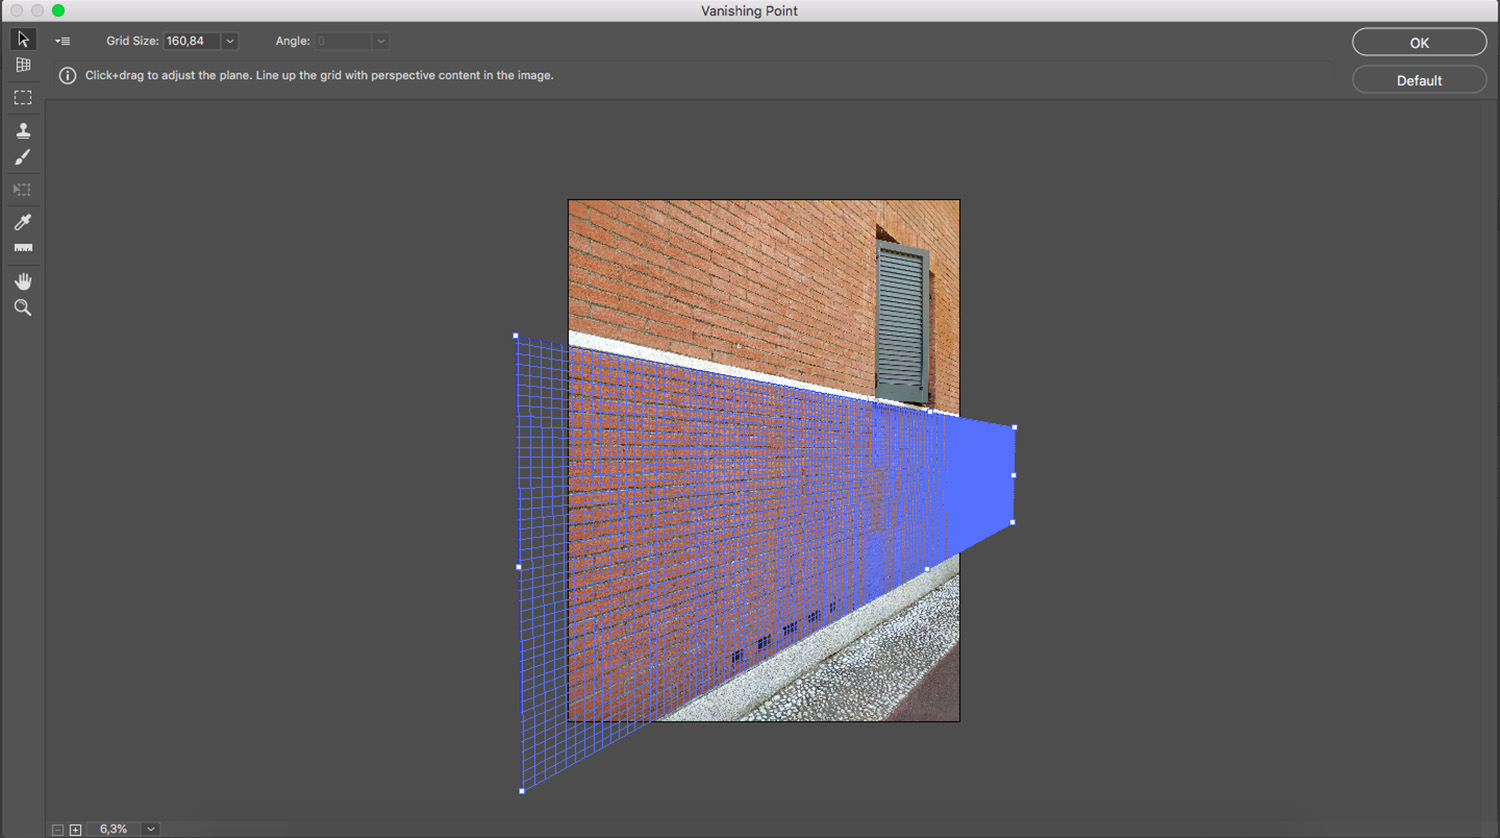 Create a Vanishing Point in Photoshop